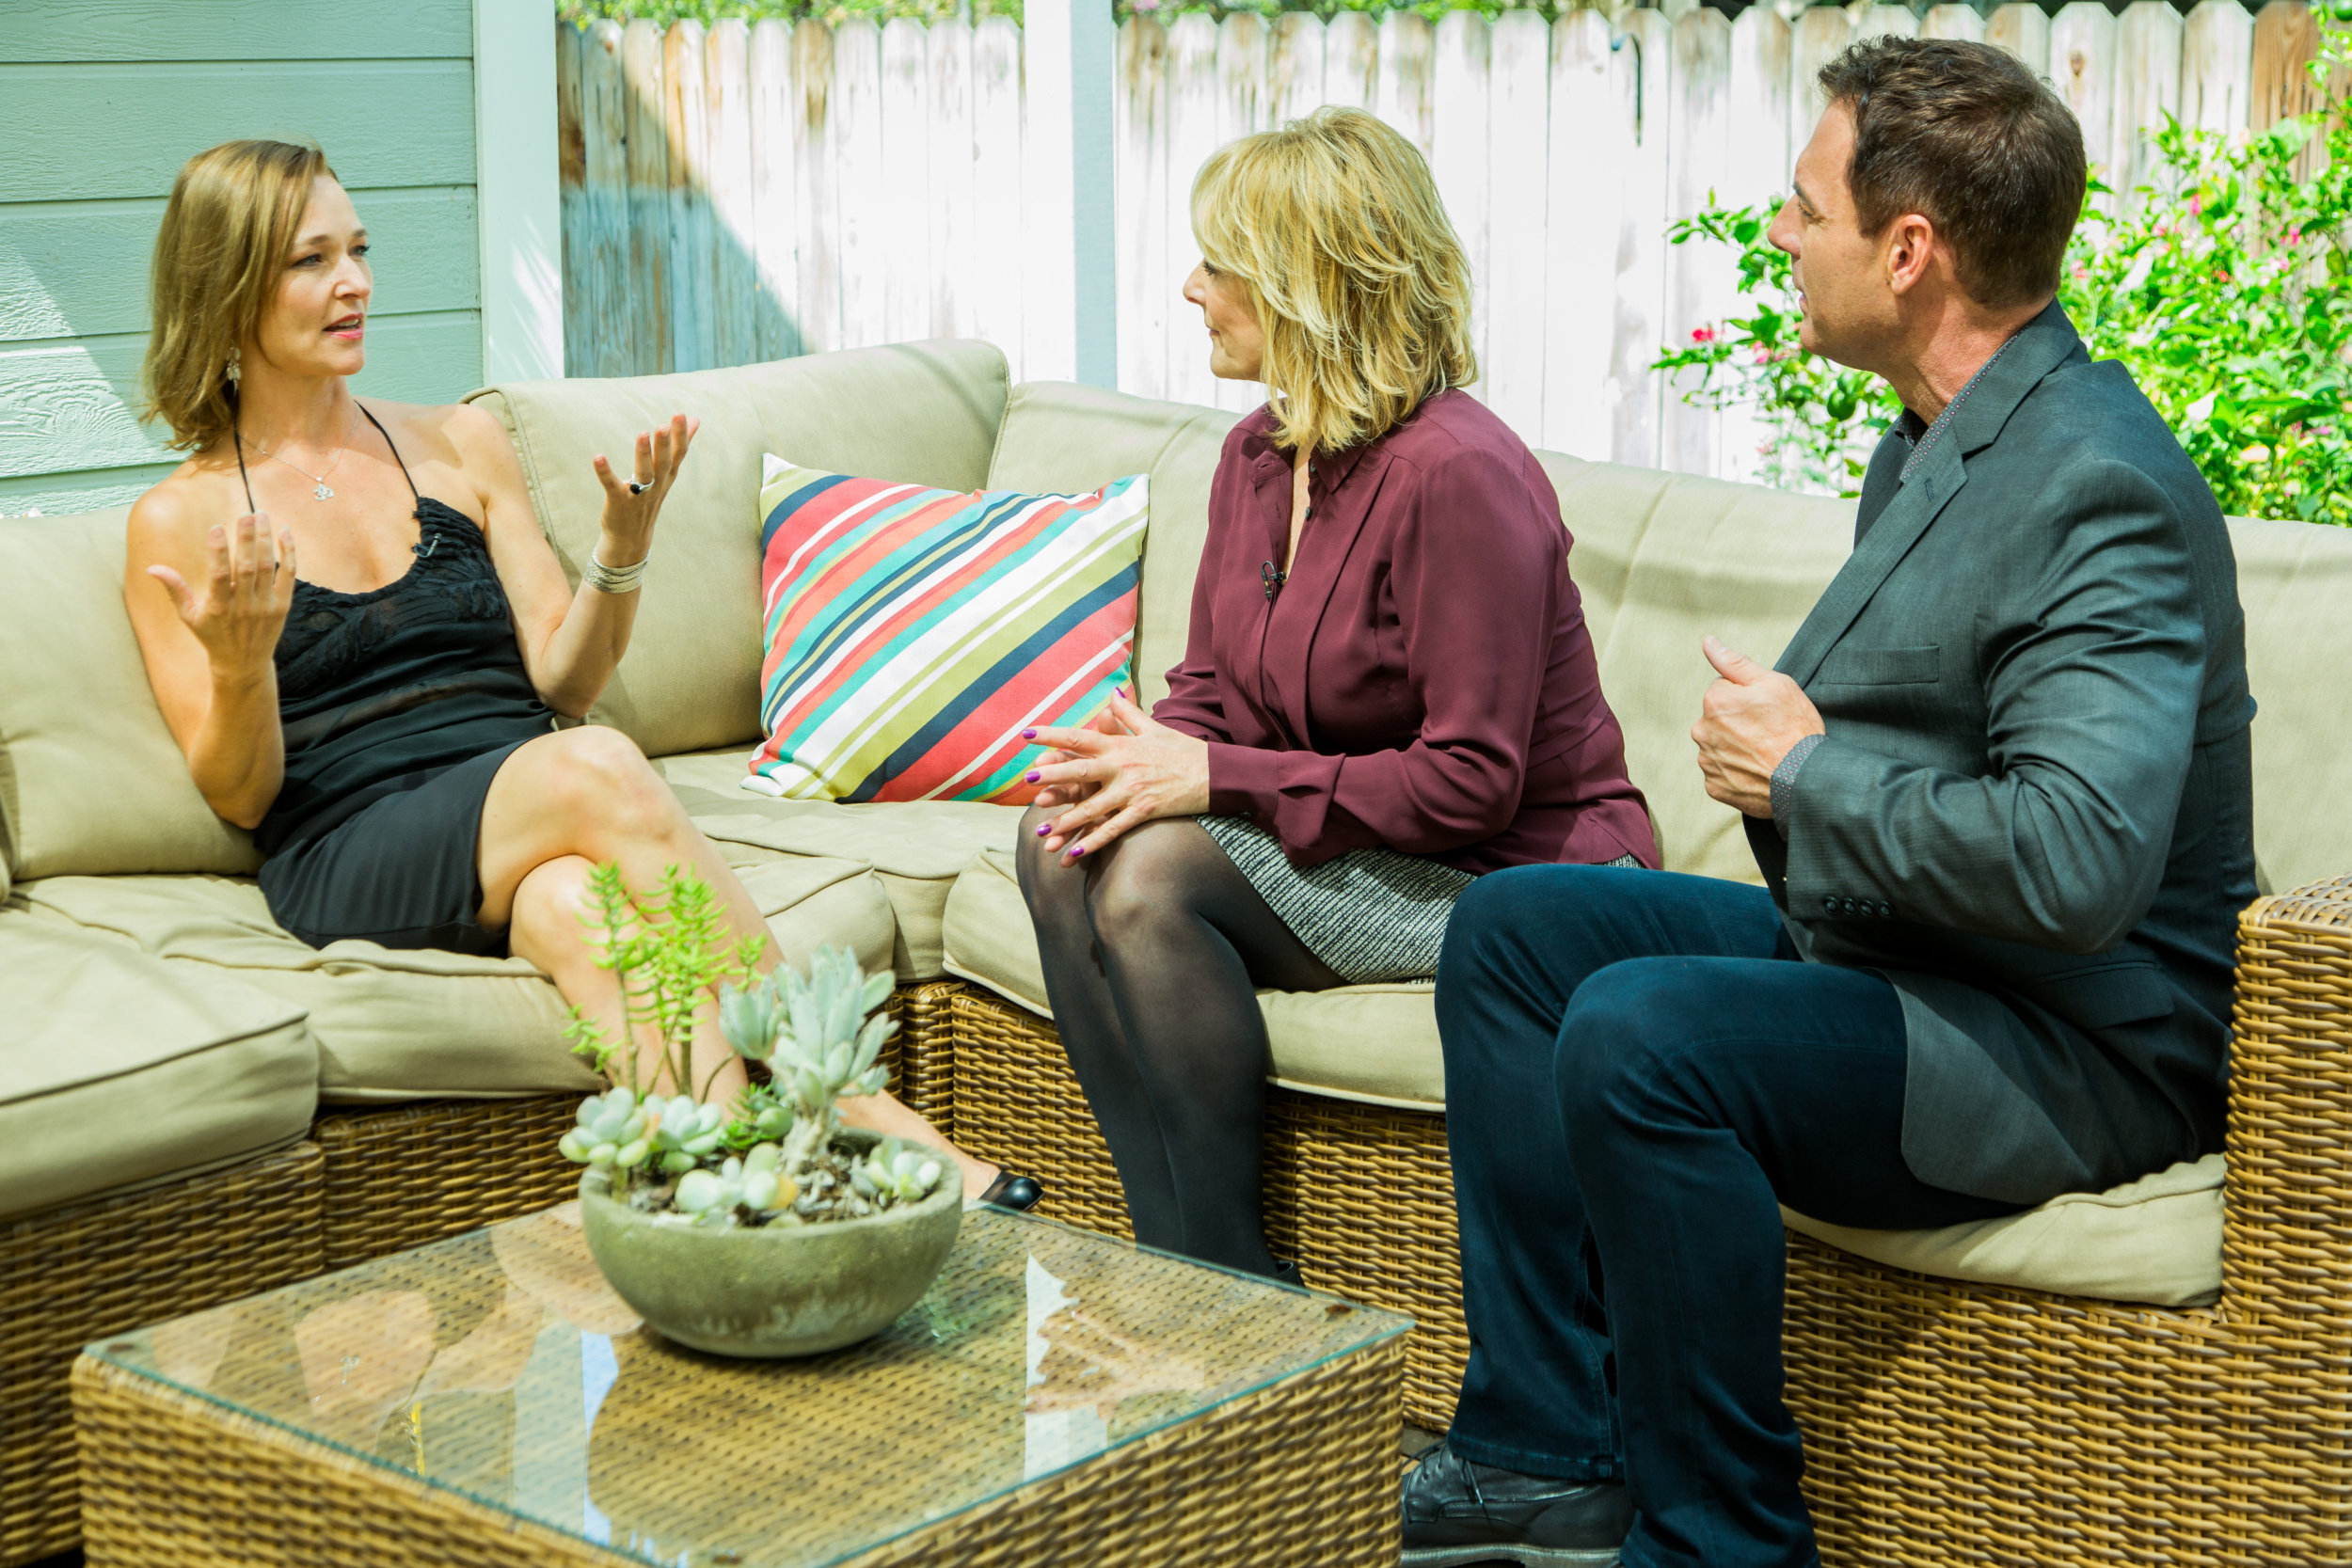 Hollywood steals home and family - Hollywood Steals Home And Family 44